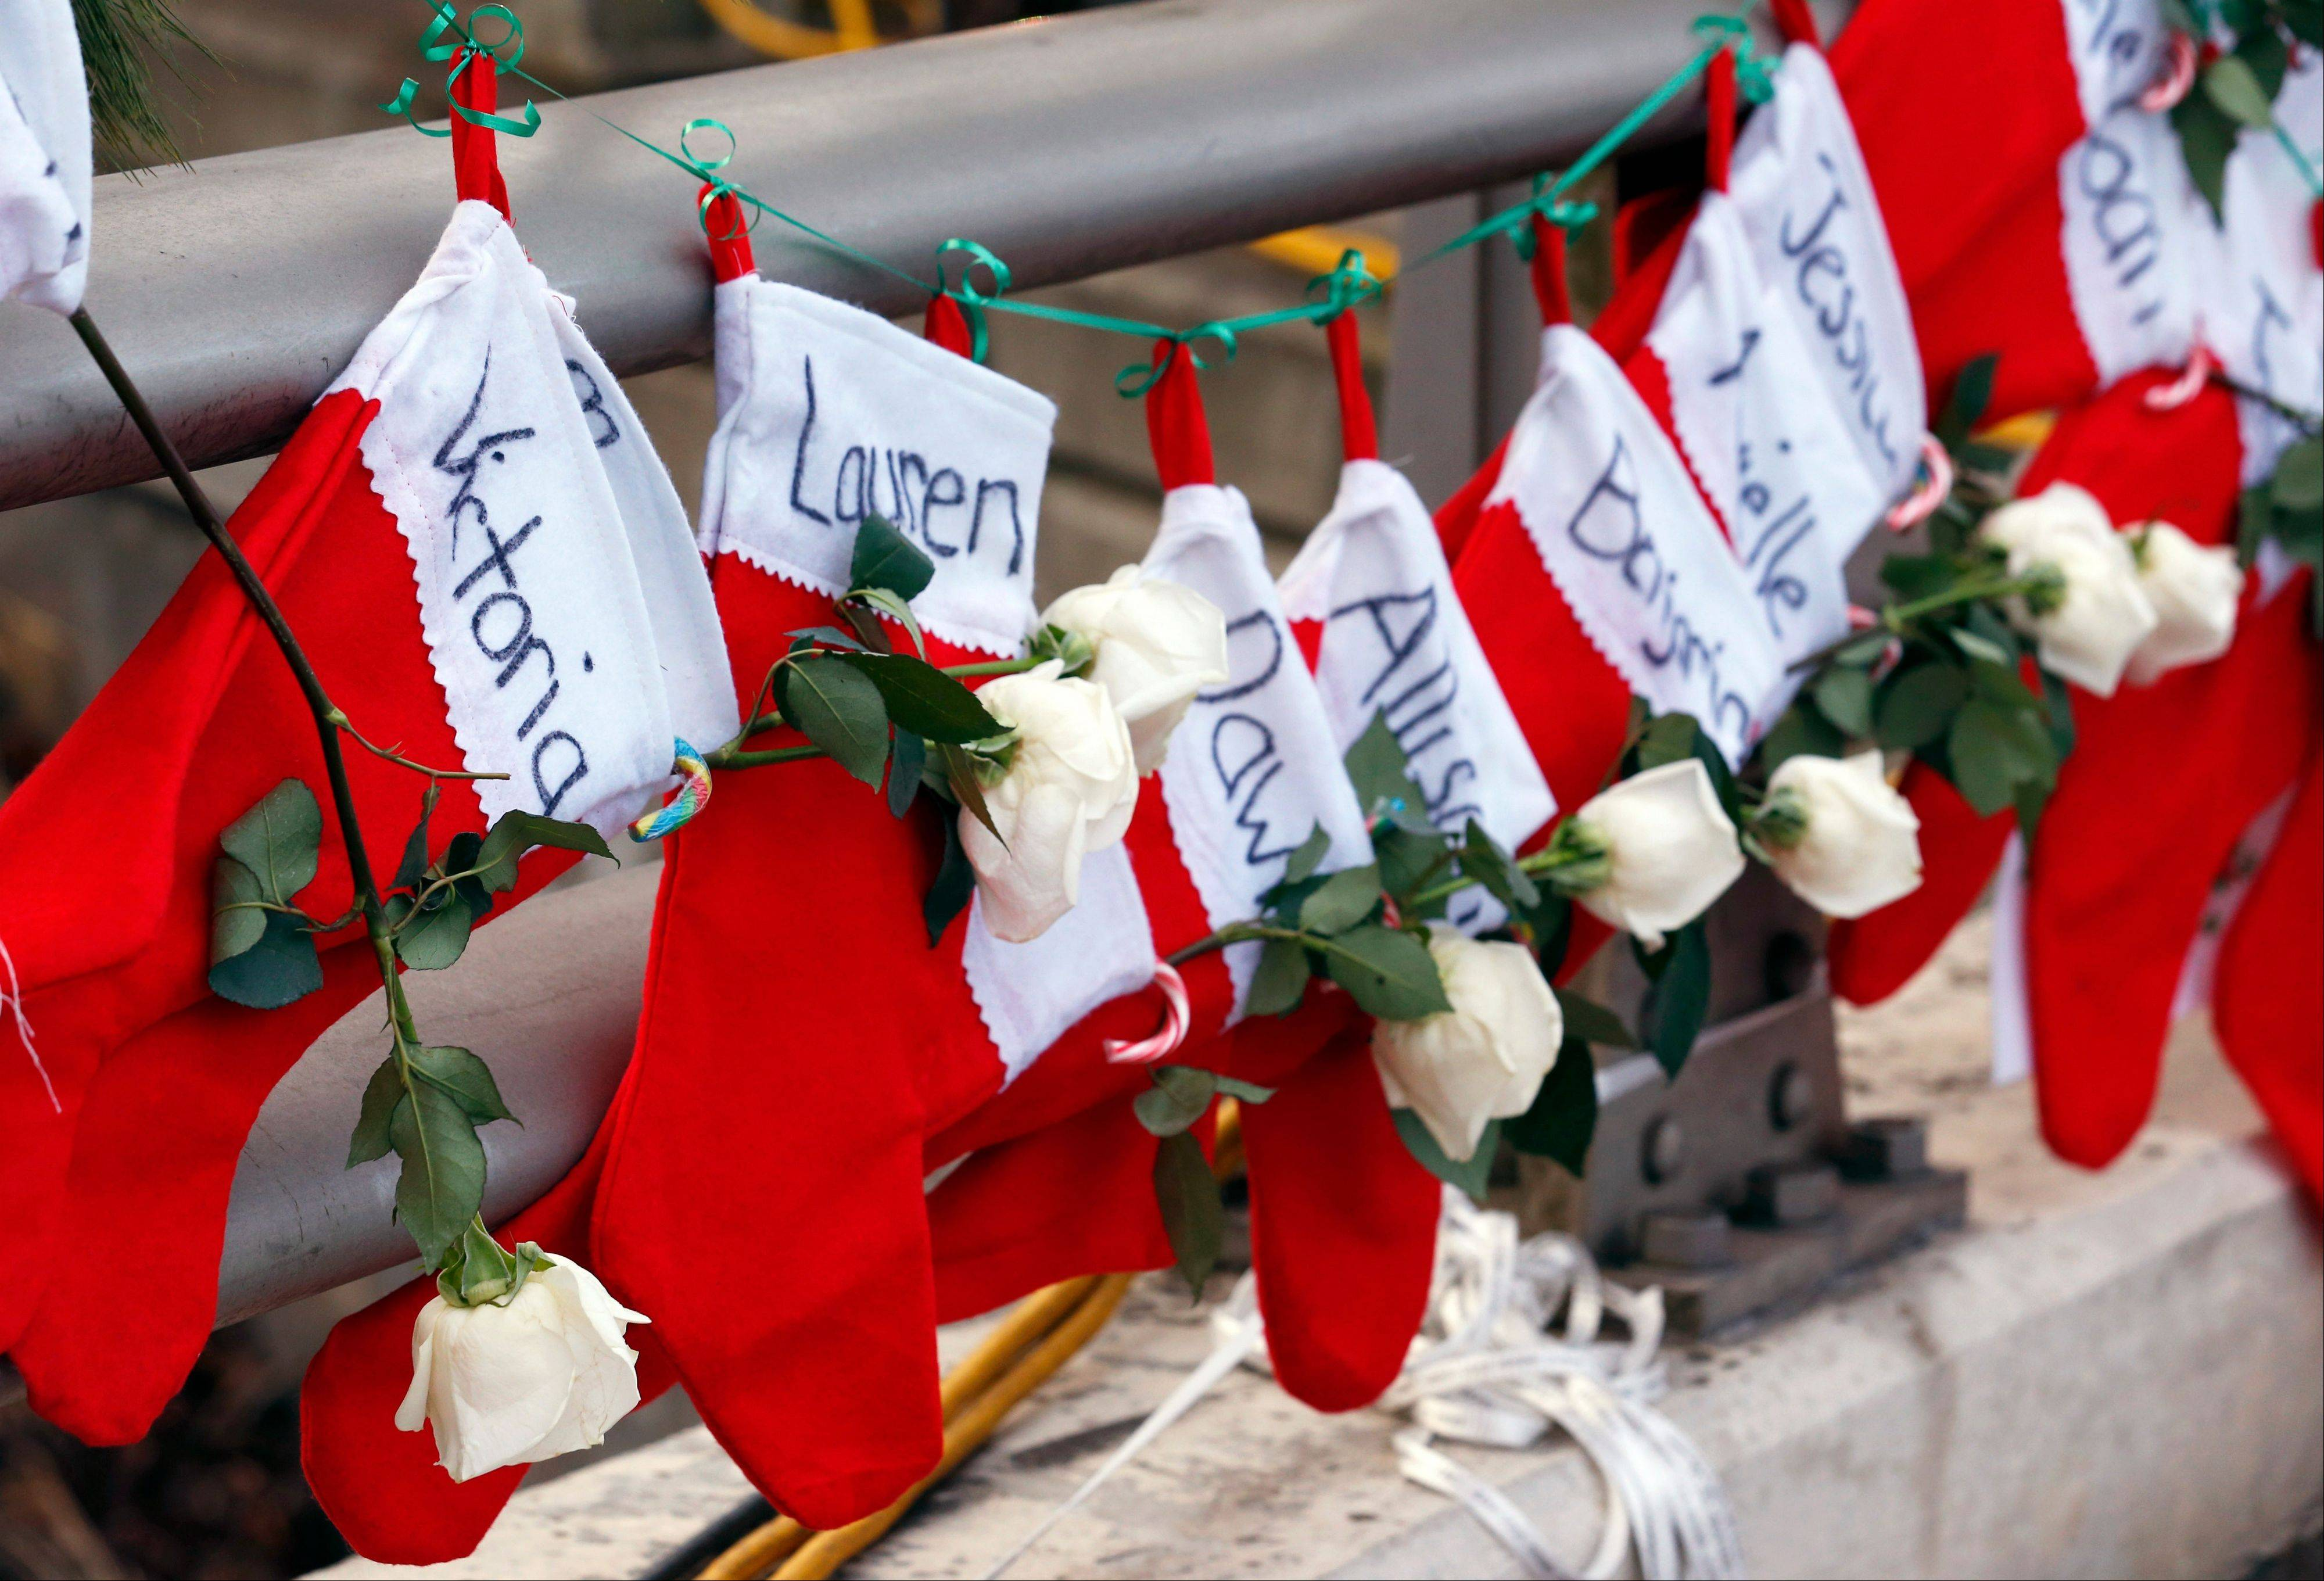 In this Wednesday, Dec. 19, 2012 file photo, Christmas stockings with the names of shooting victims hang from railing near a makeshift memorial near the town Christmas tree in the Sandy Hook village of Newtown, Conn. In the wake of the shooting, the grieving town is trying to find meaning in Christmas.